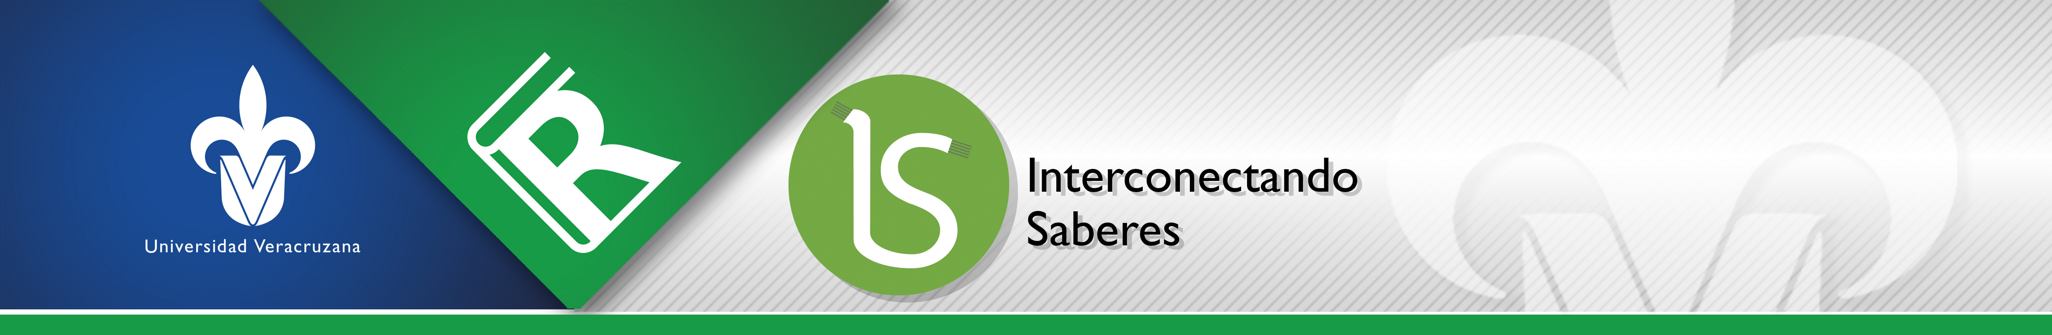 Interconectando Saberes